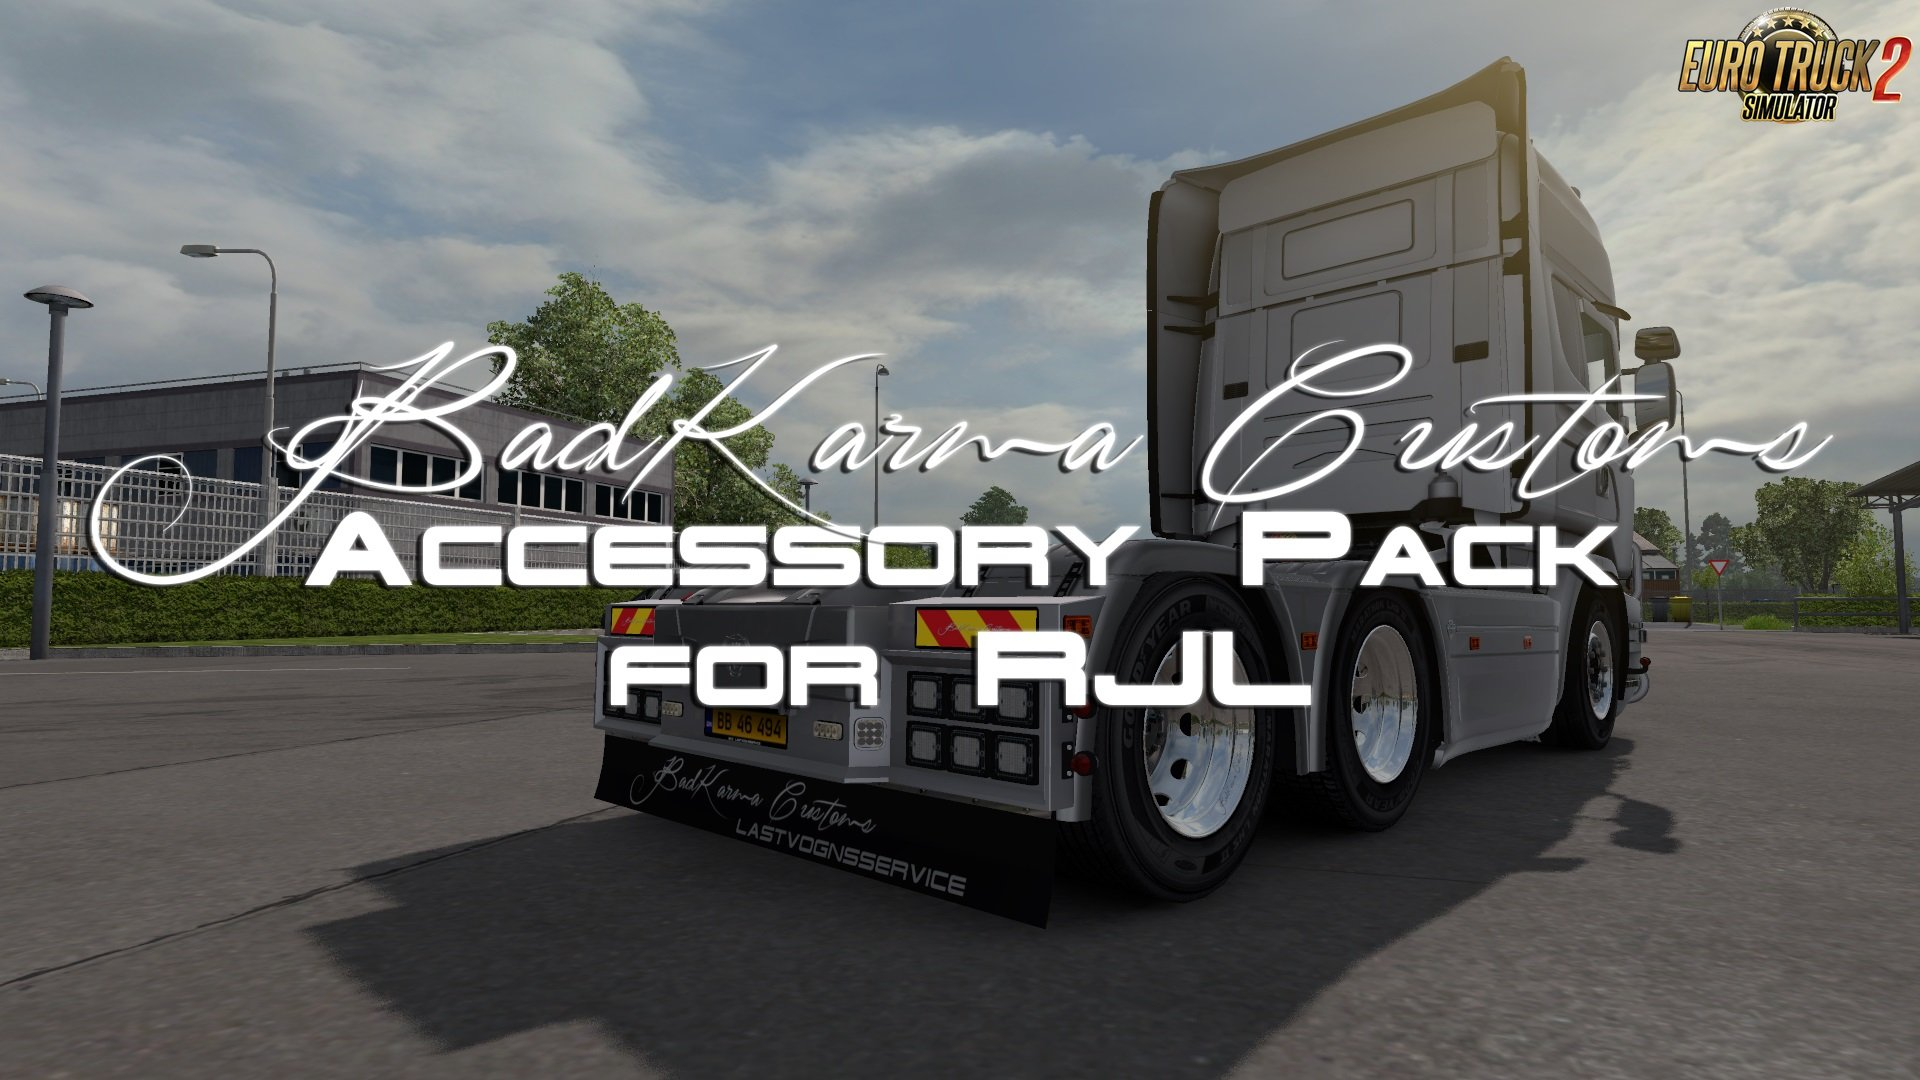 BadKarma Customs Accessory Pack for RJL Scania Trucks